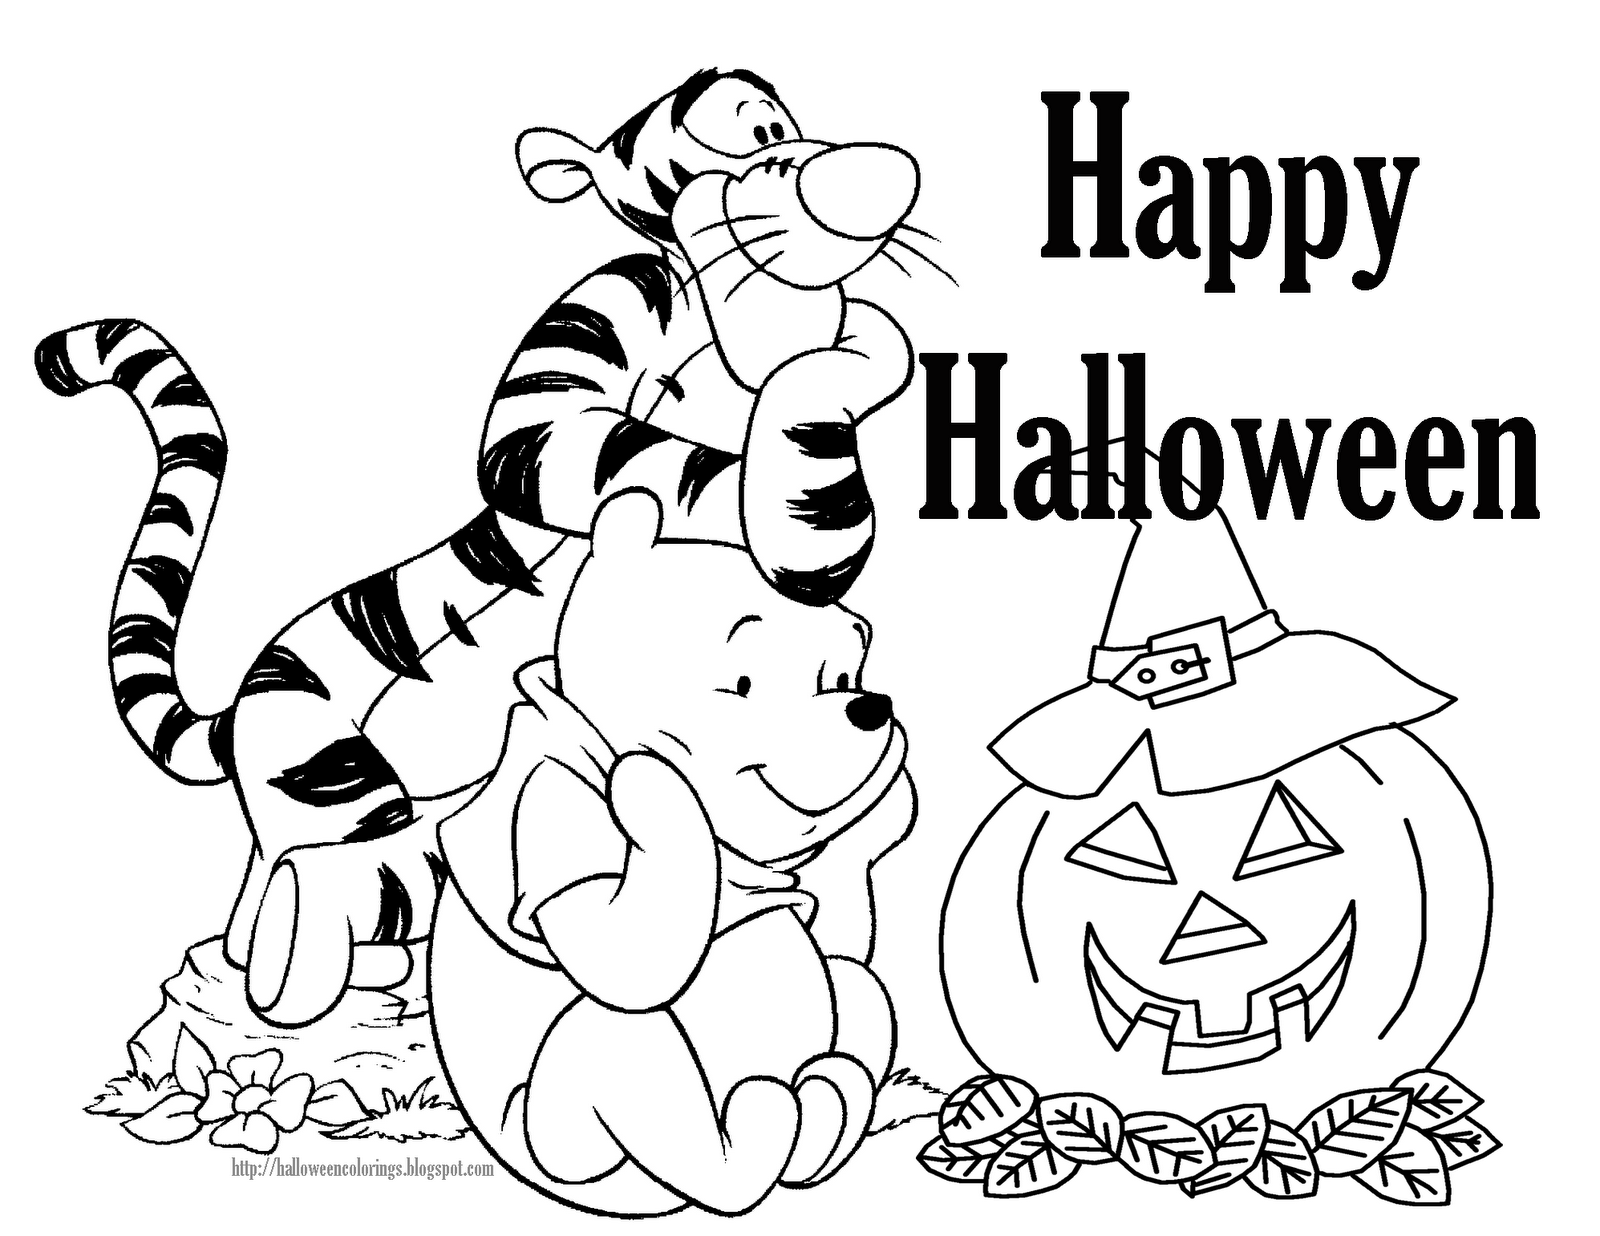 Halloween coloring printables disney - Free Disney Halloween Coloring Pages